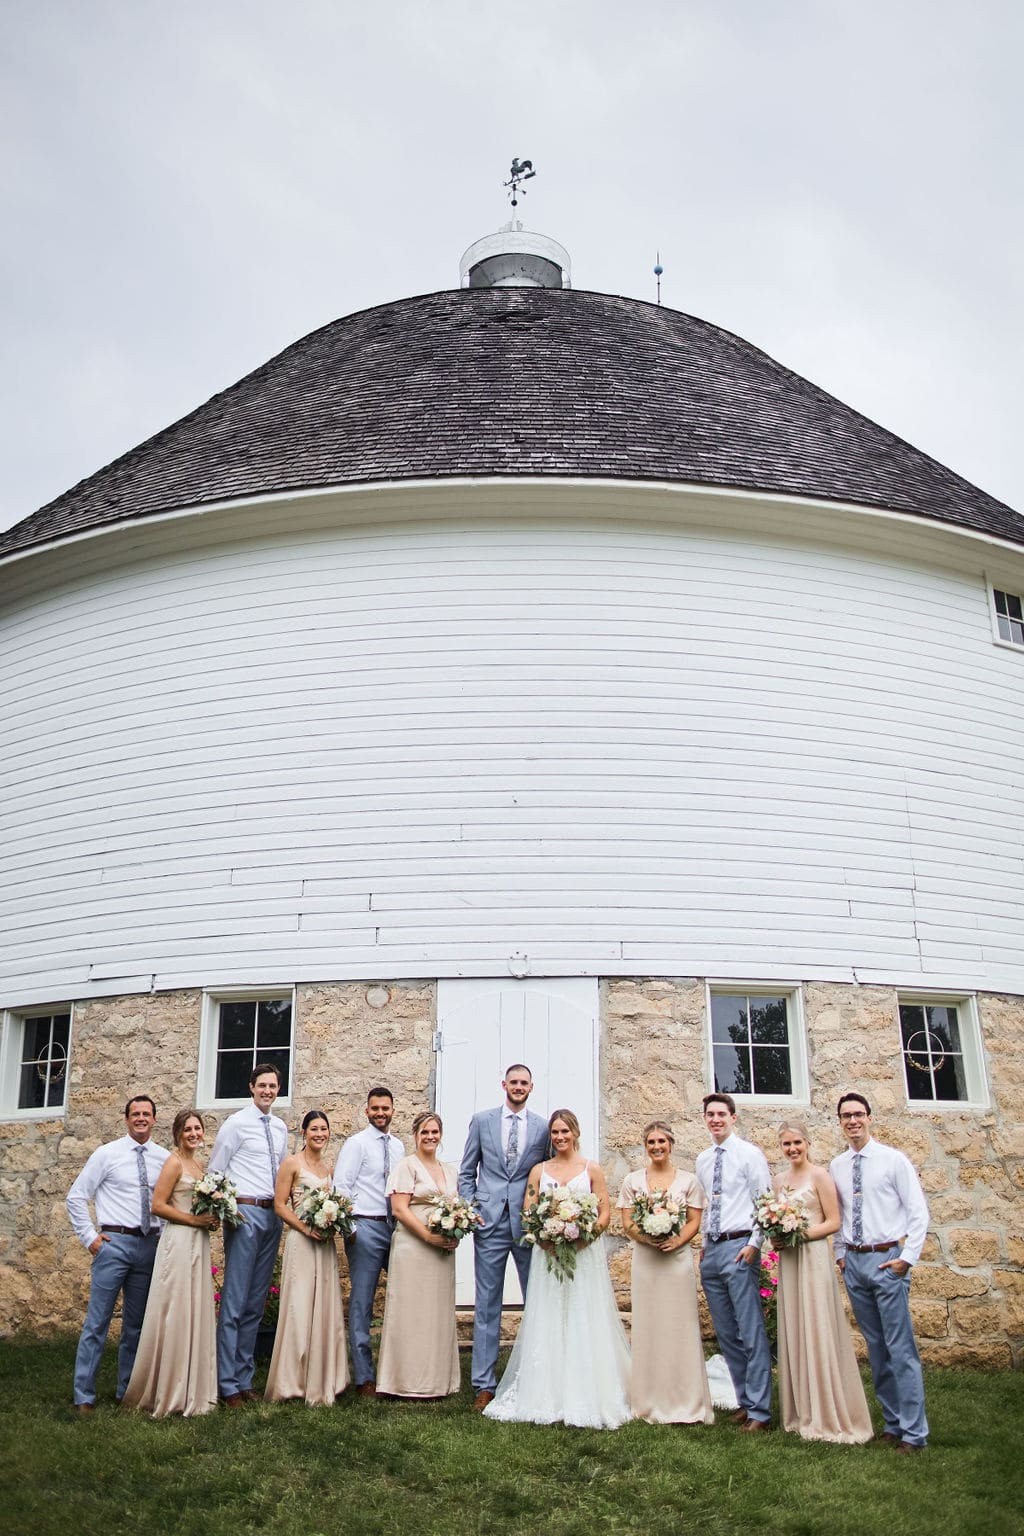 Wedding party in front of the Round Barn